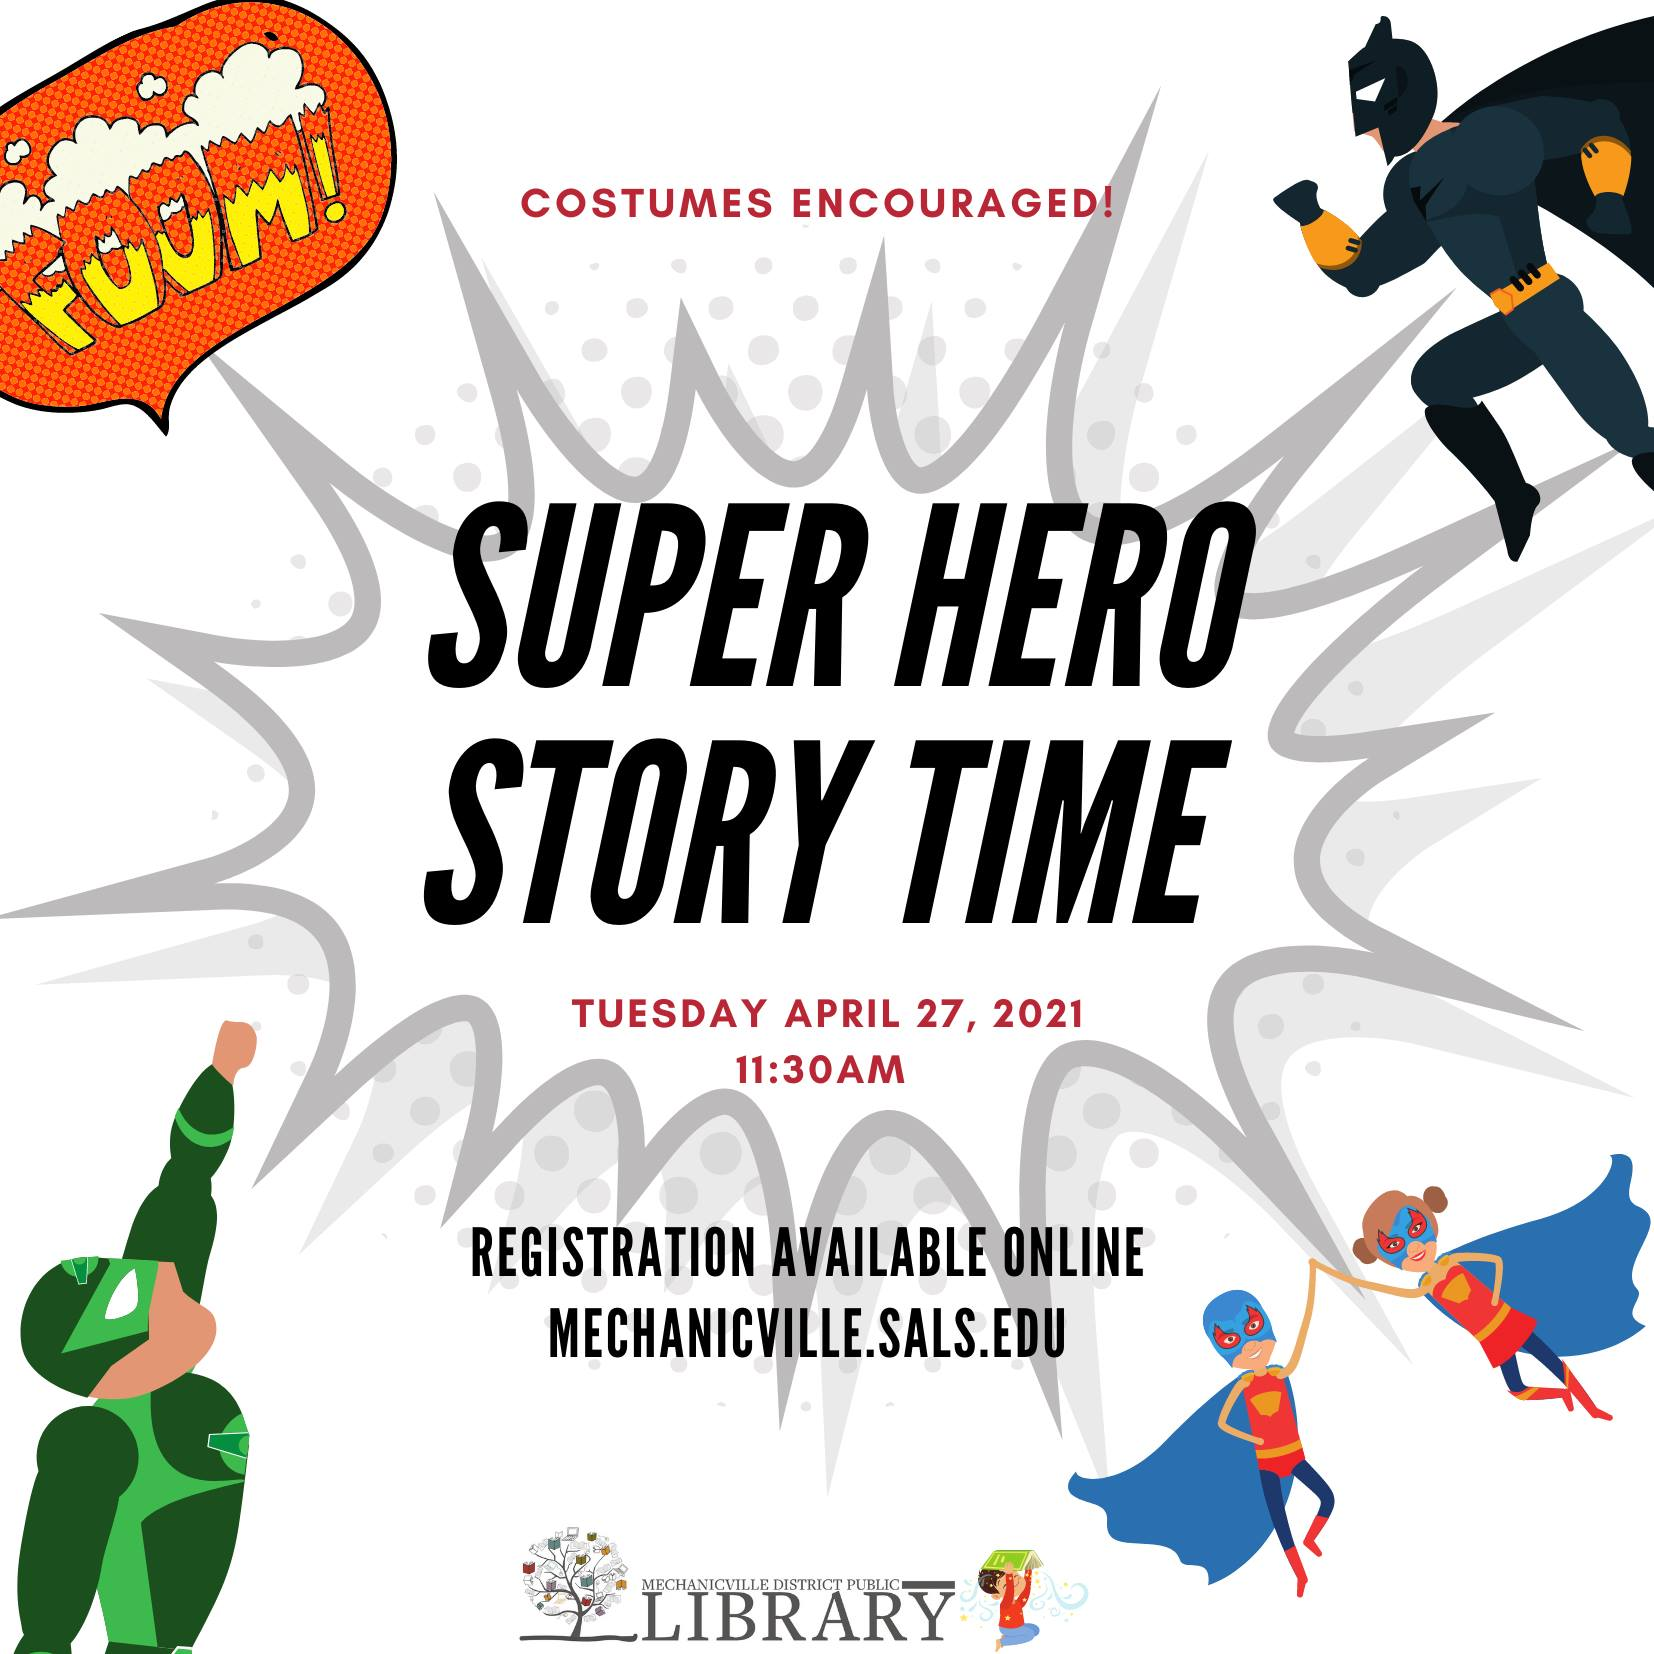 Story Time: Super Heroes! @ Mechanicville District Public Library | Mechanicville | New York | United States